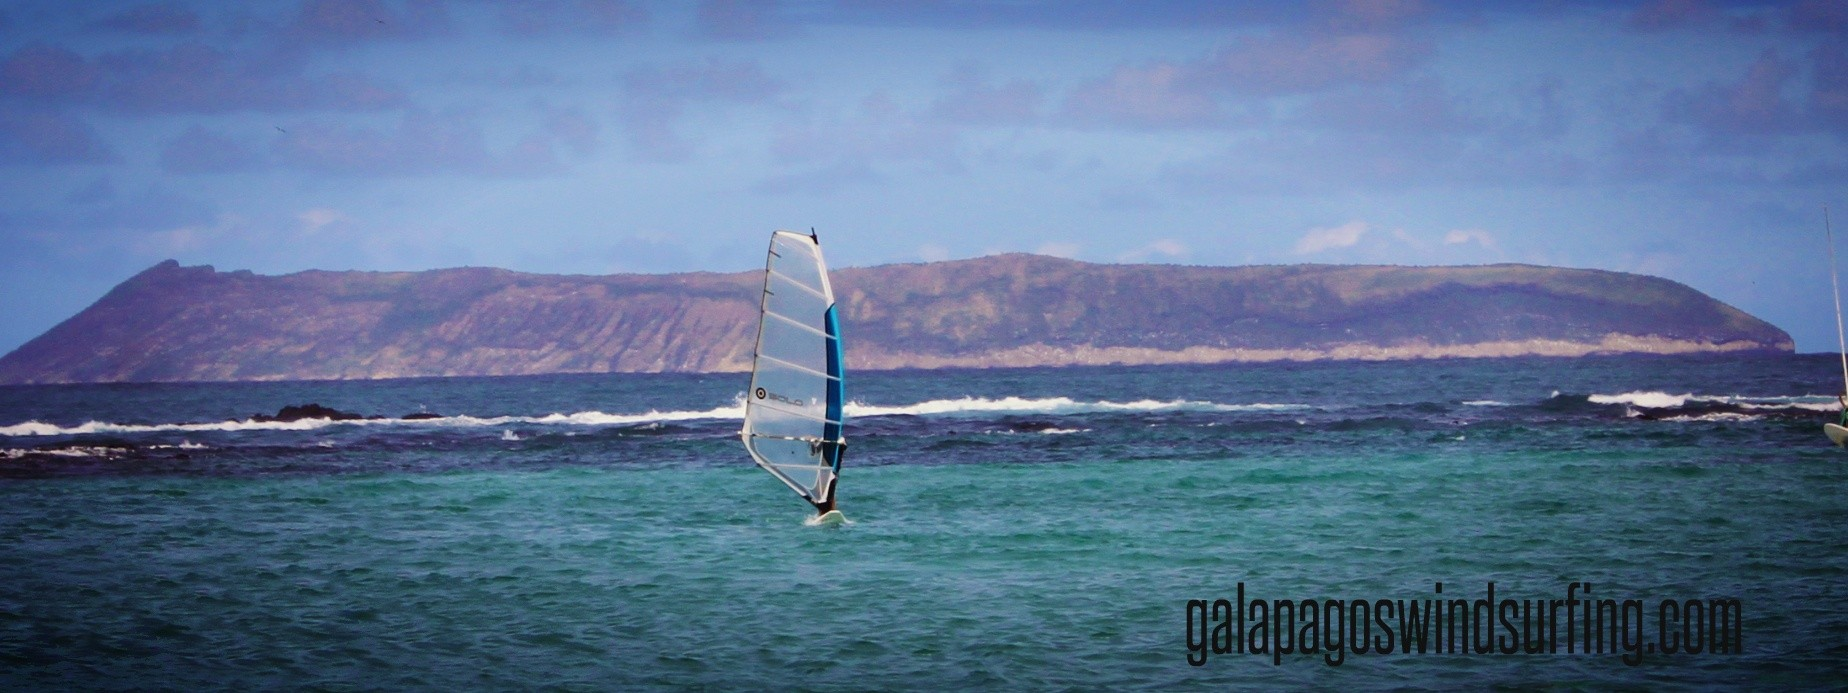 GALAPAGOS WINDSURFING CENTER's photo of El Faro